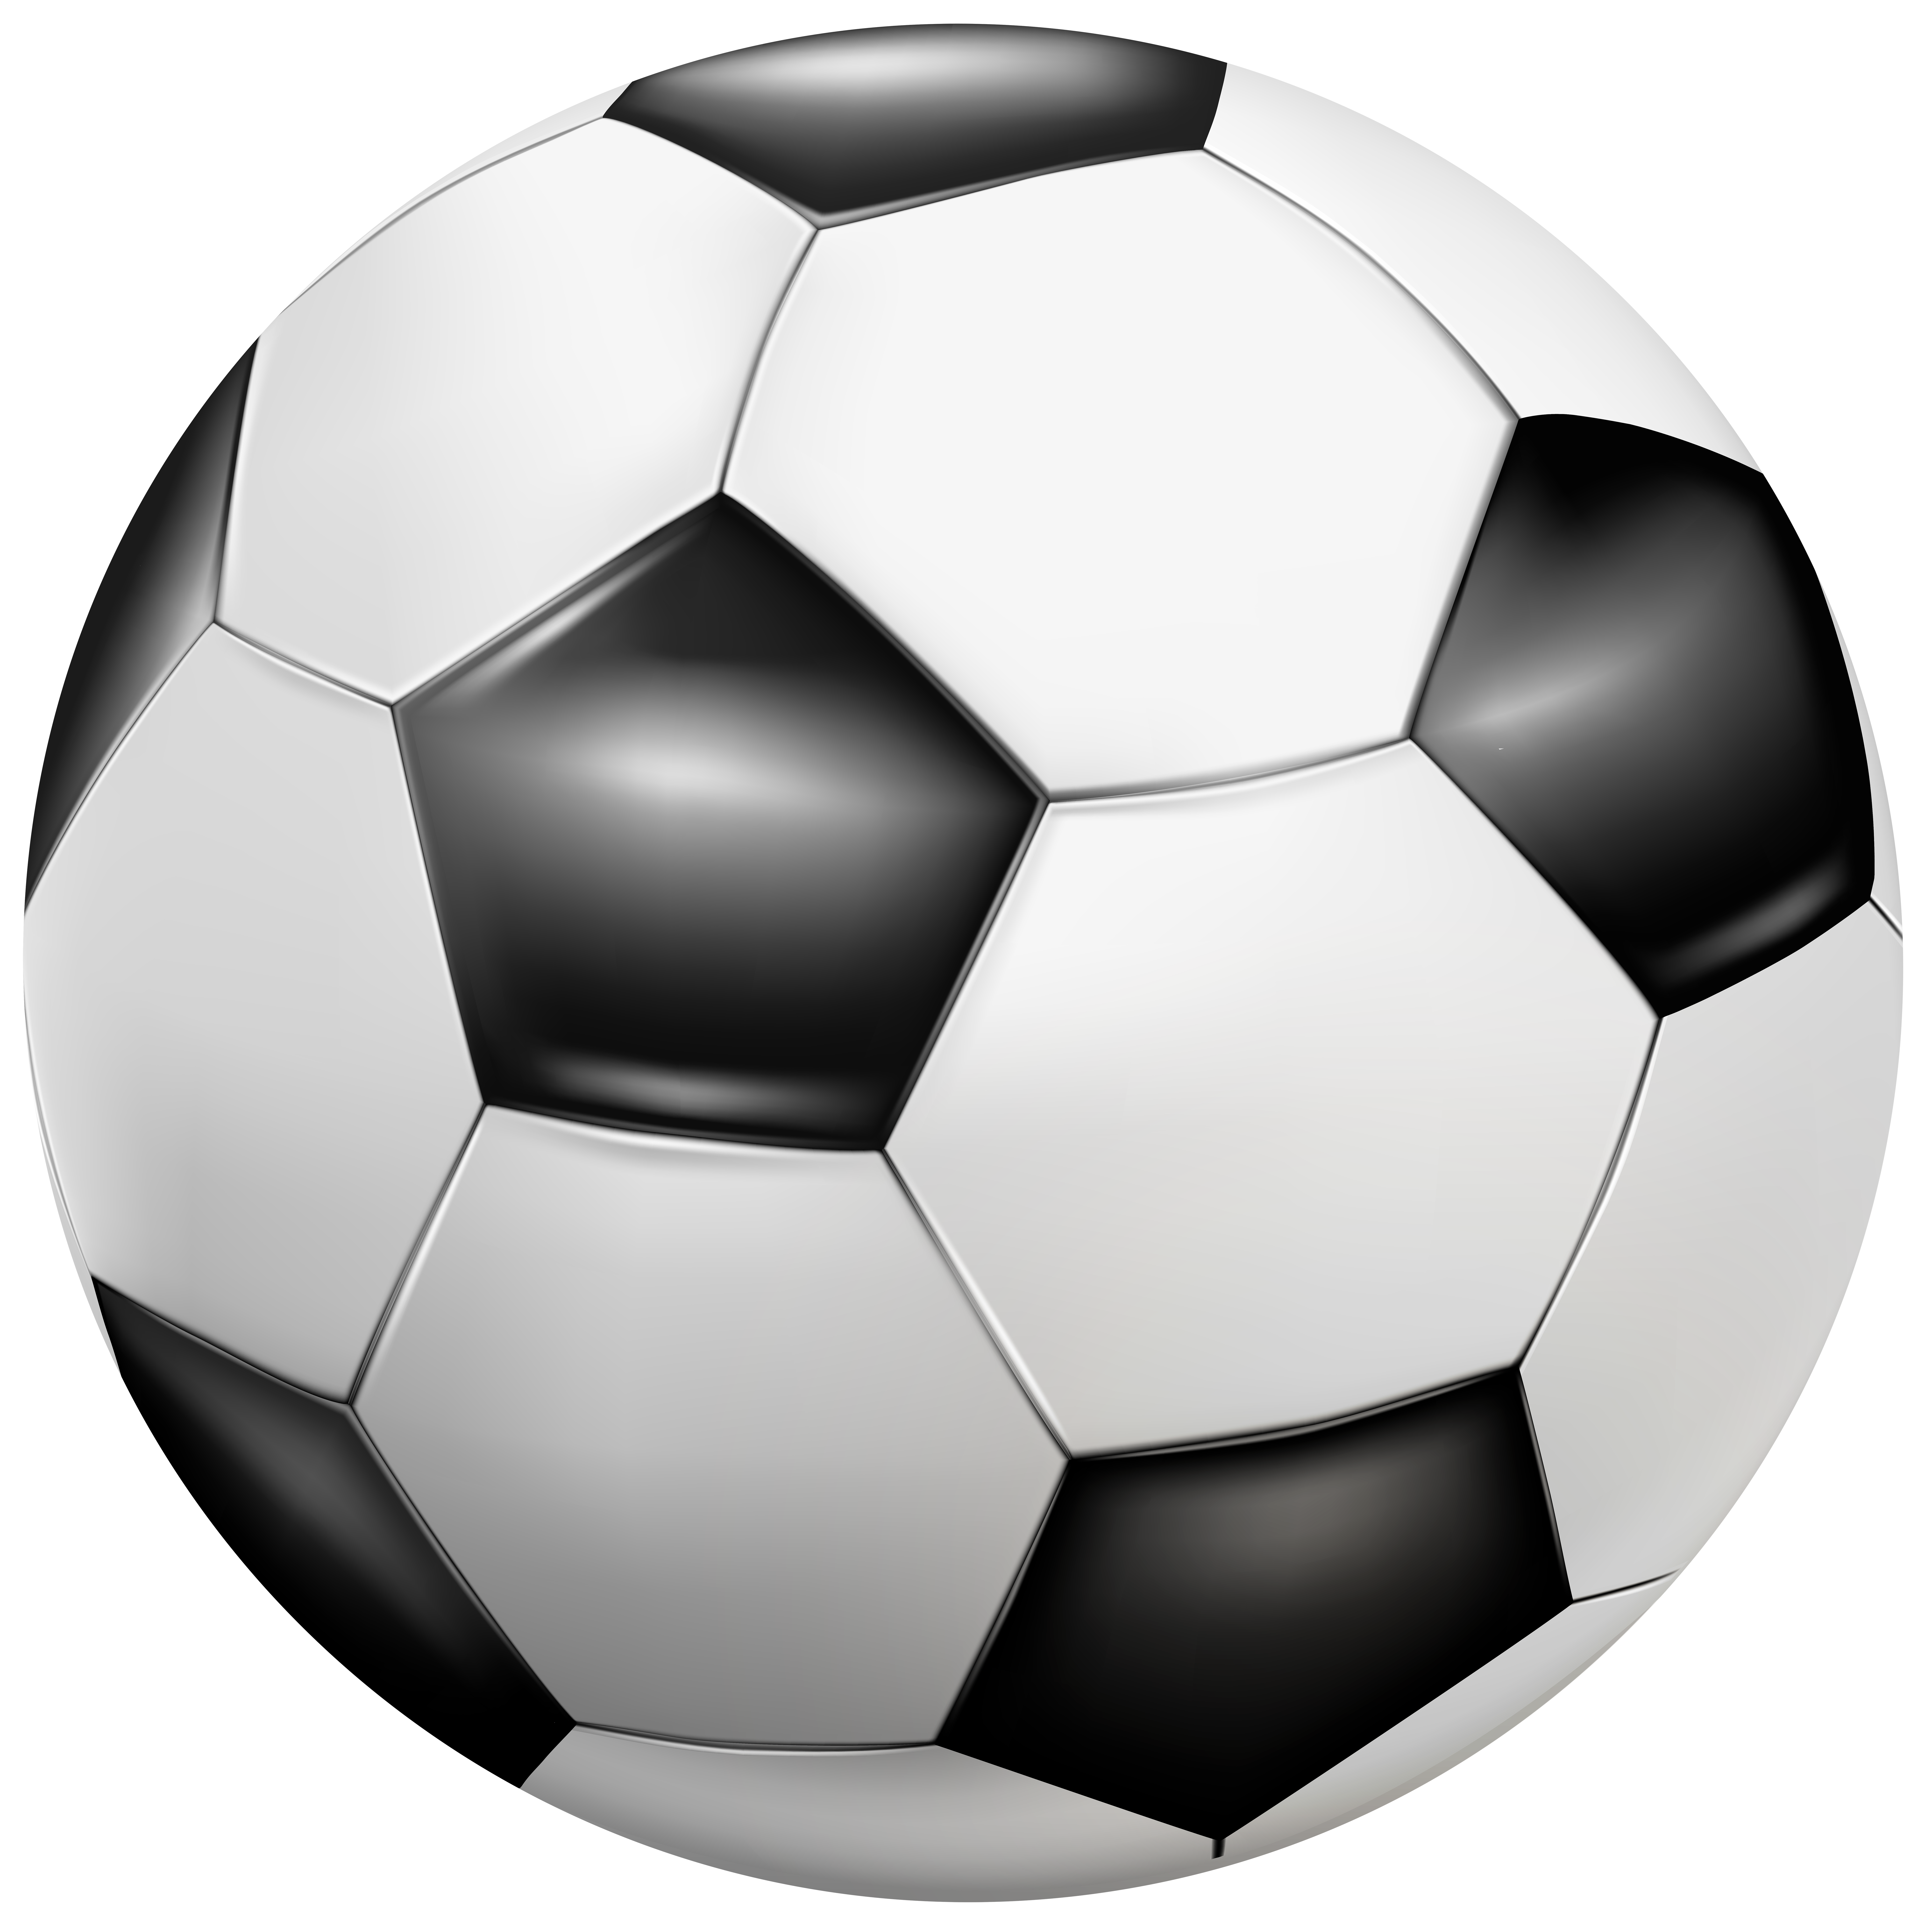 2018 FIFA World Cup Football Ball game.